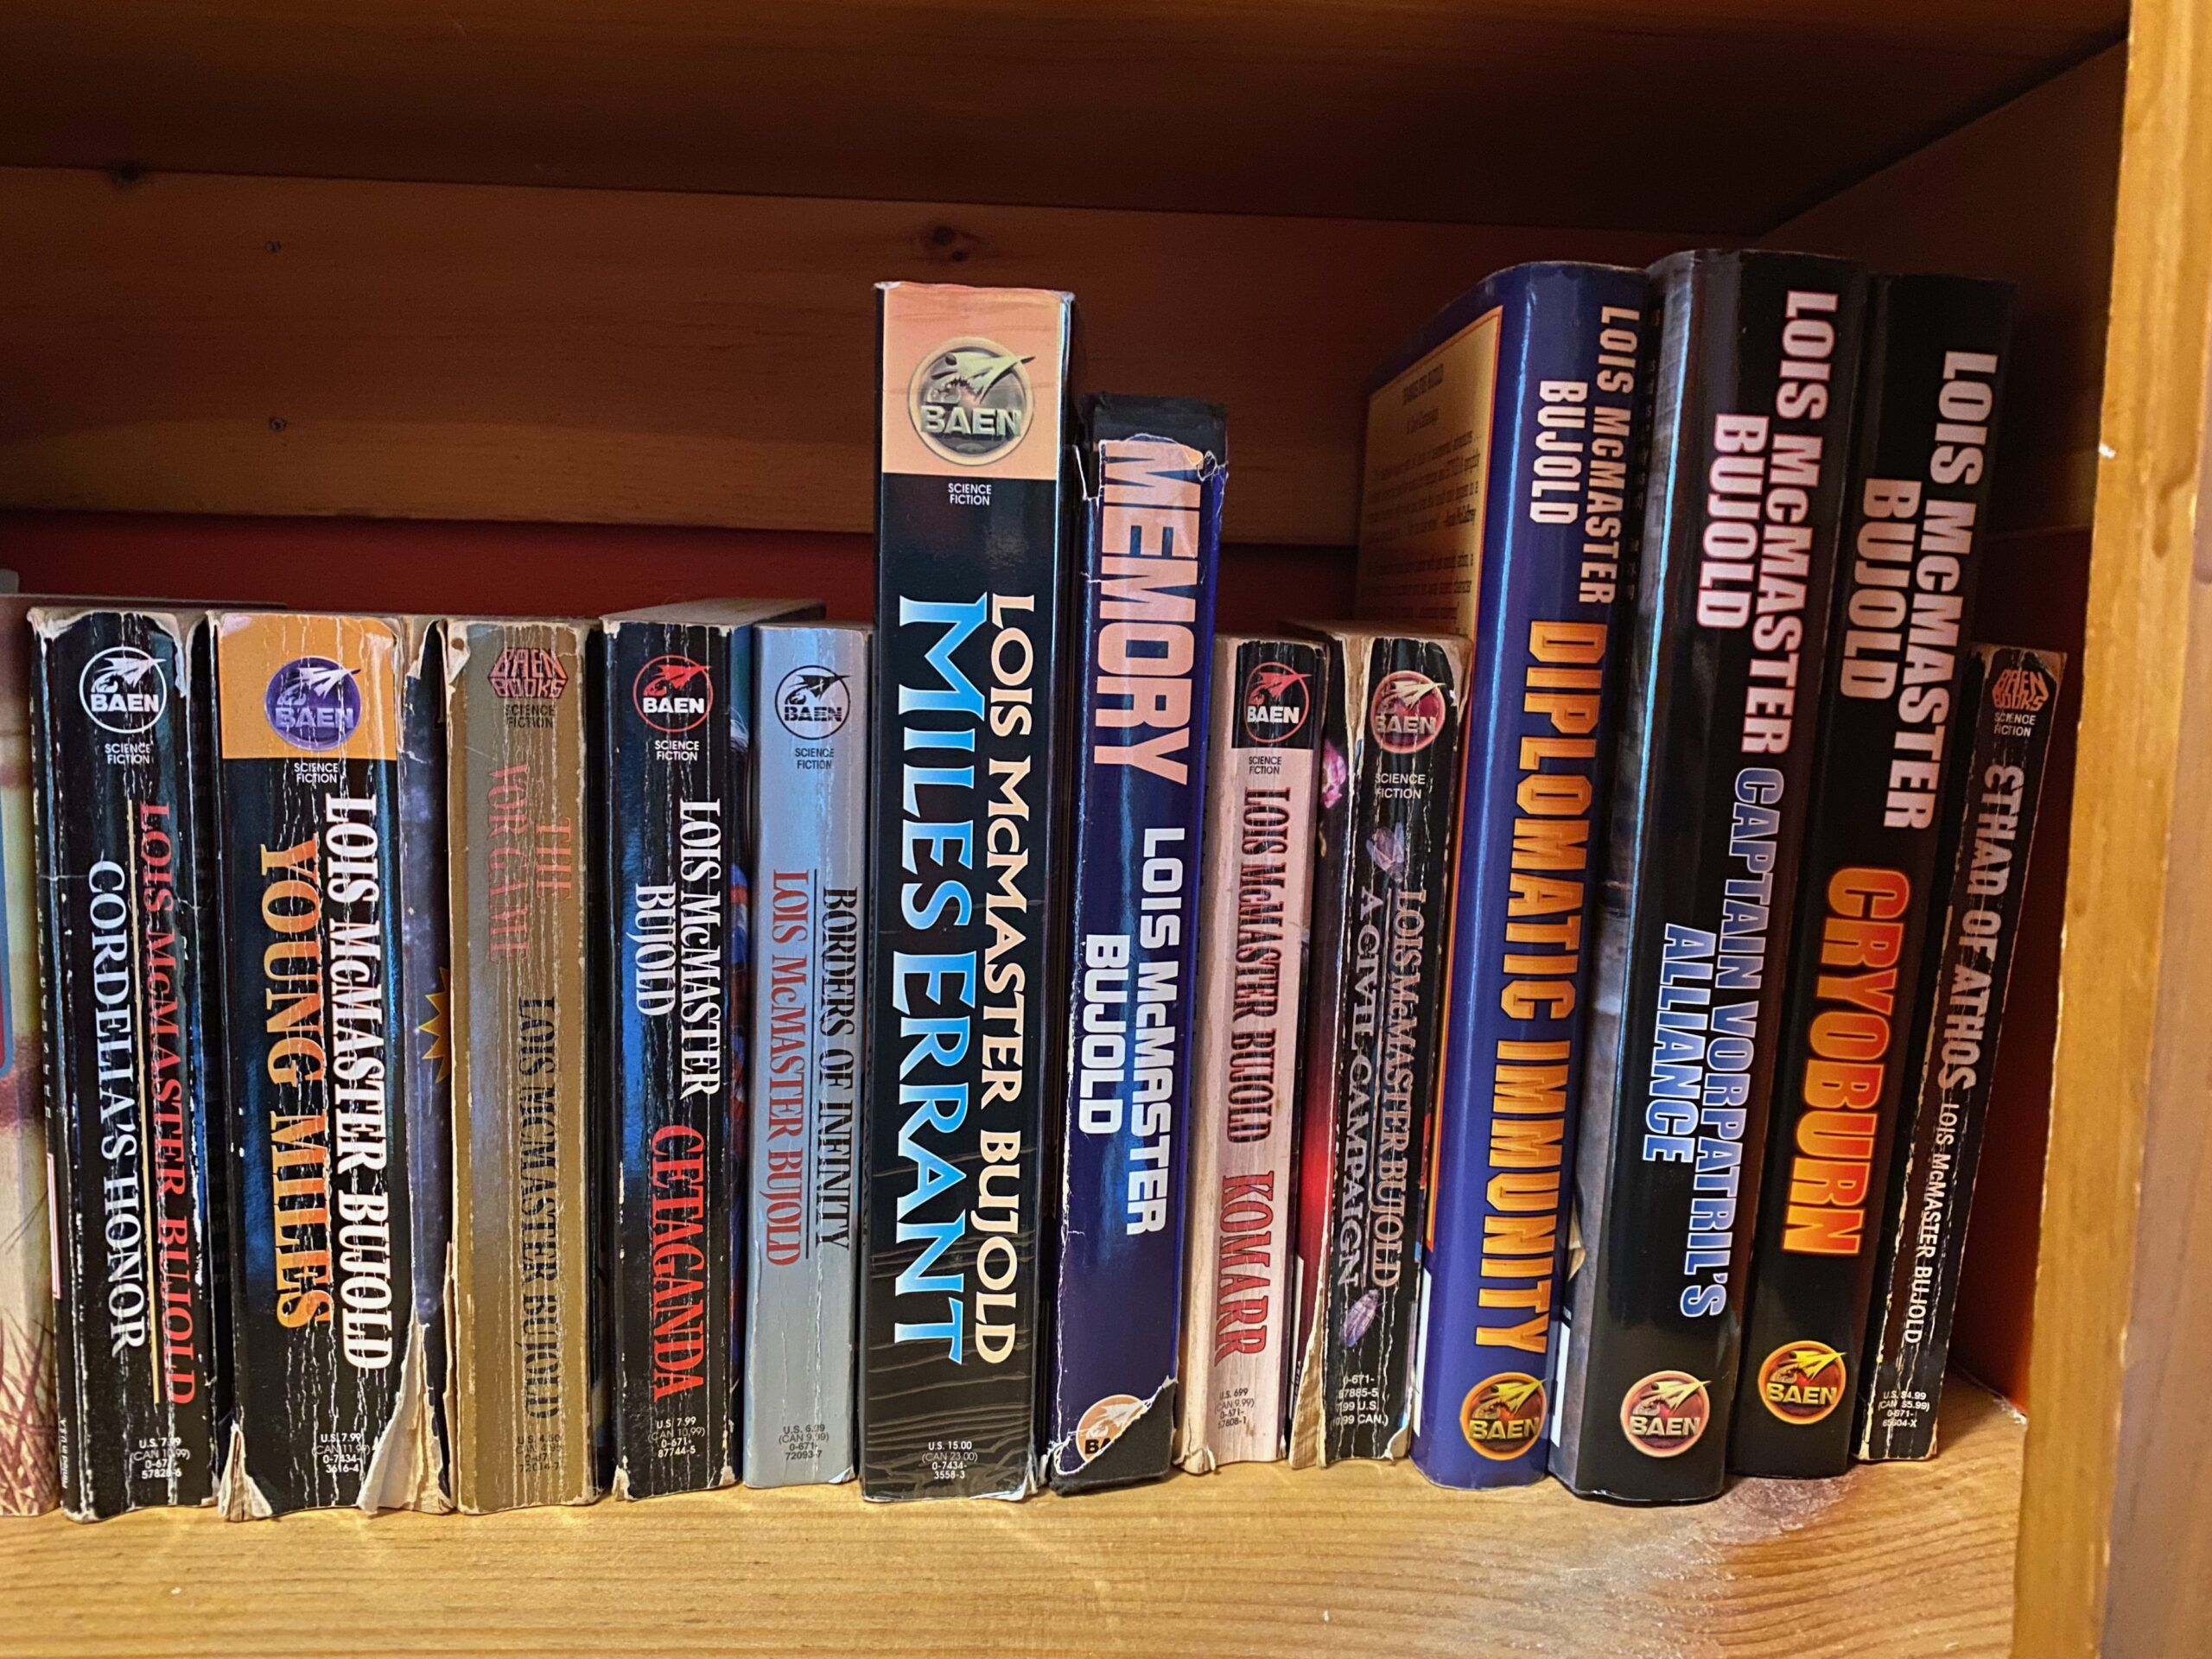 The books in the Vorkosigan Saga lined up on a bookshelf. They are mostly well-worn mass market paperbacks. (Photo taken by me)